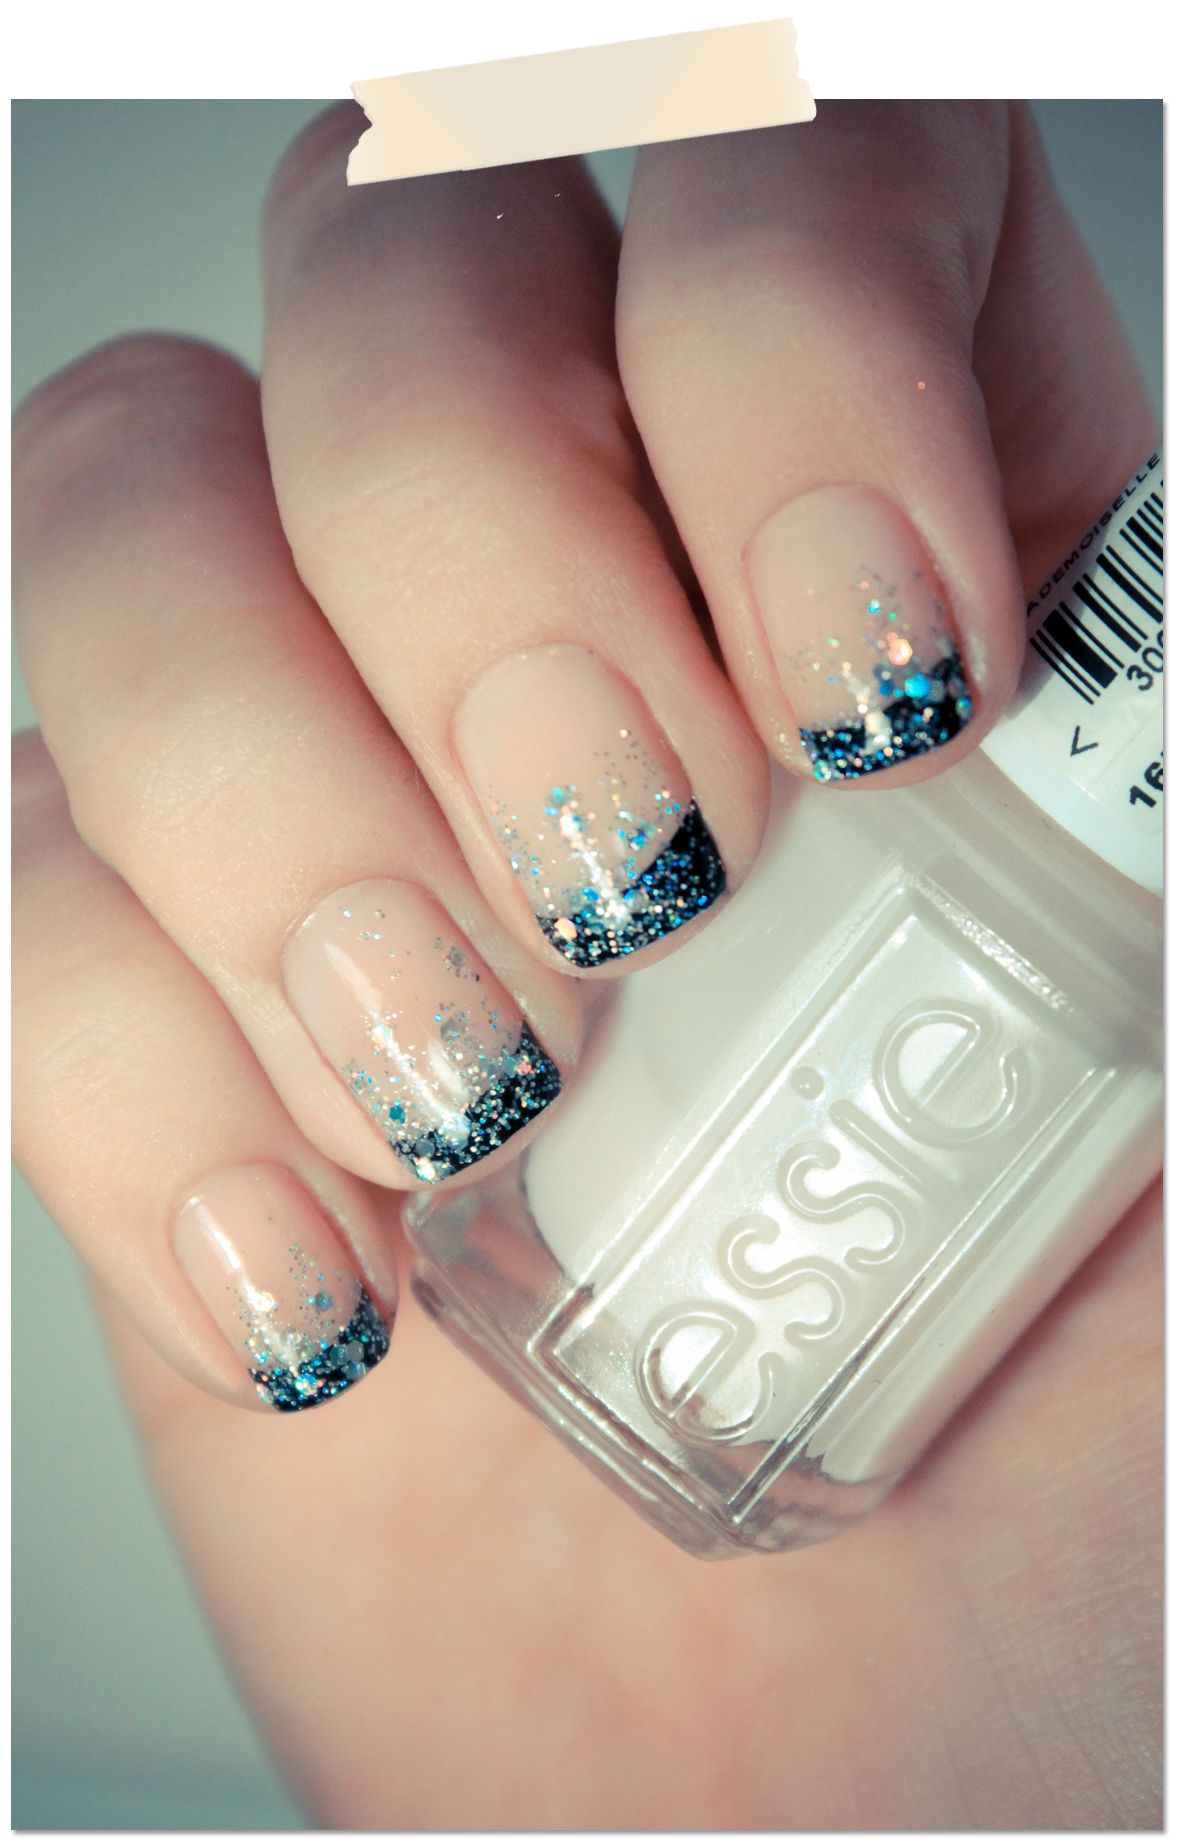 French manicure with black and sparkles!